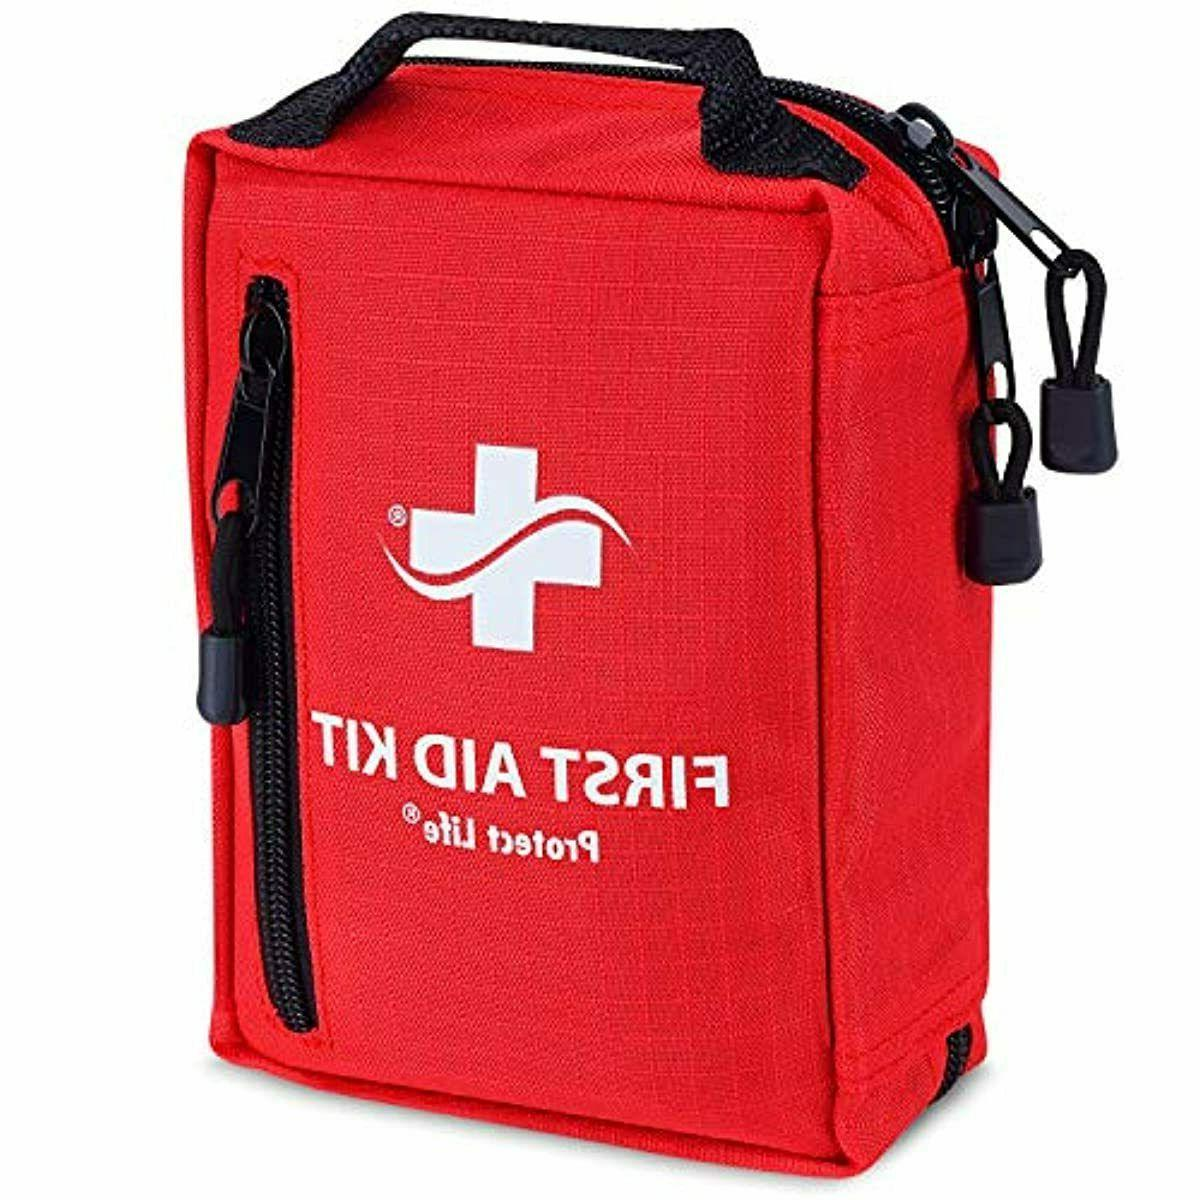 small compact first aid kit for hiking